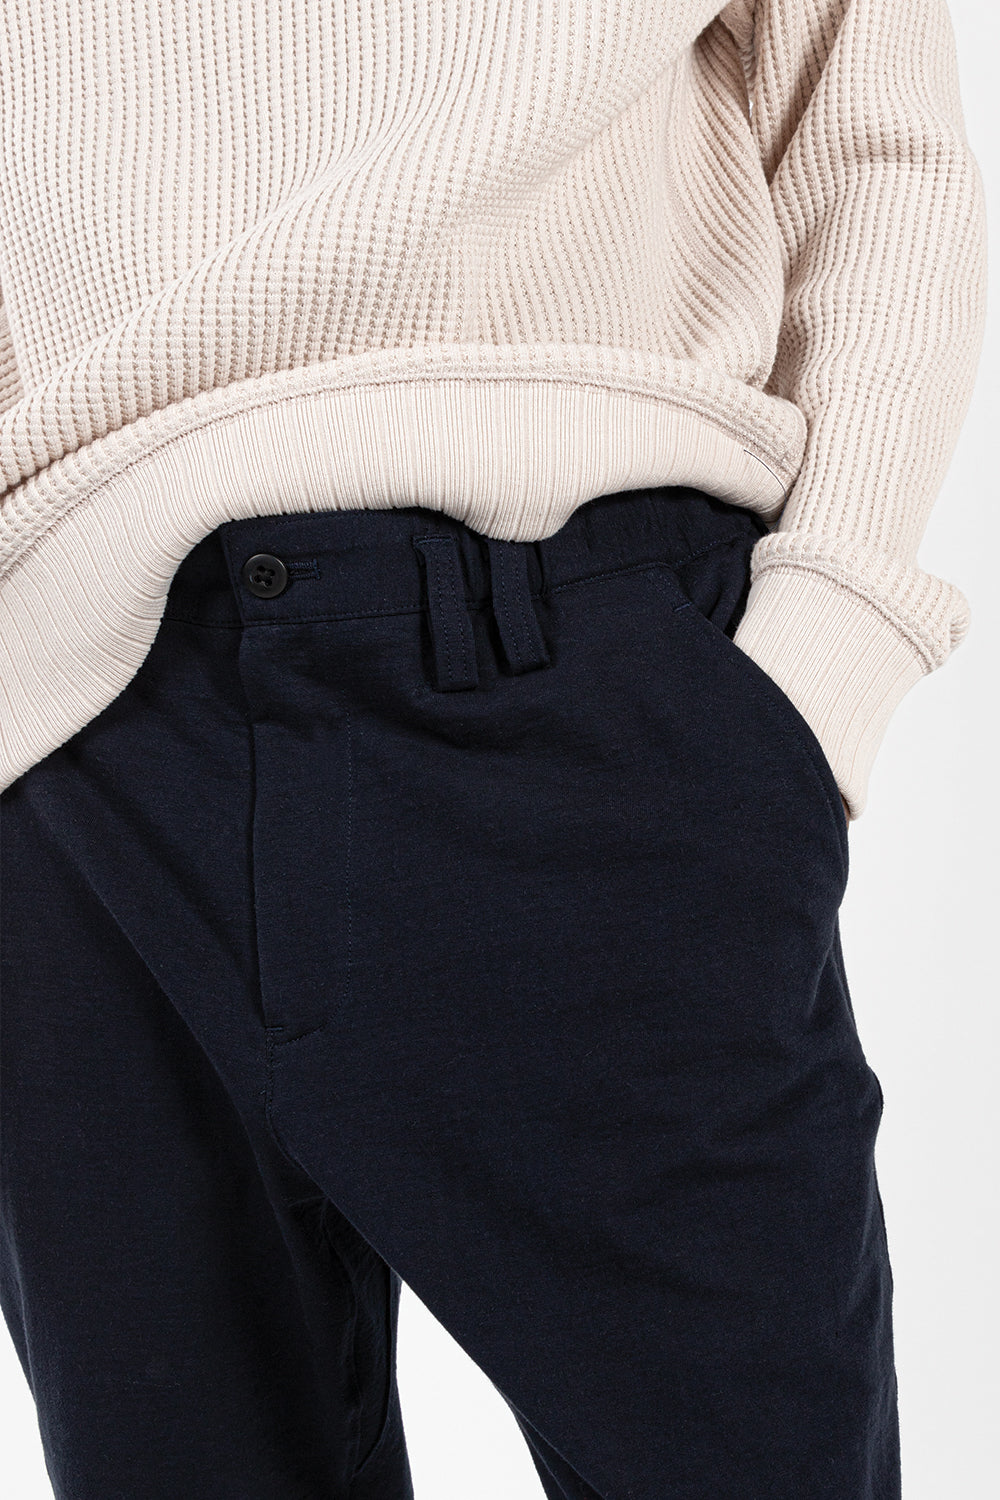 jackman-stretch-trousers-navy-full